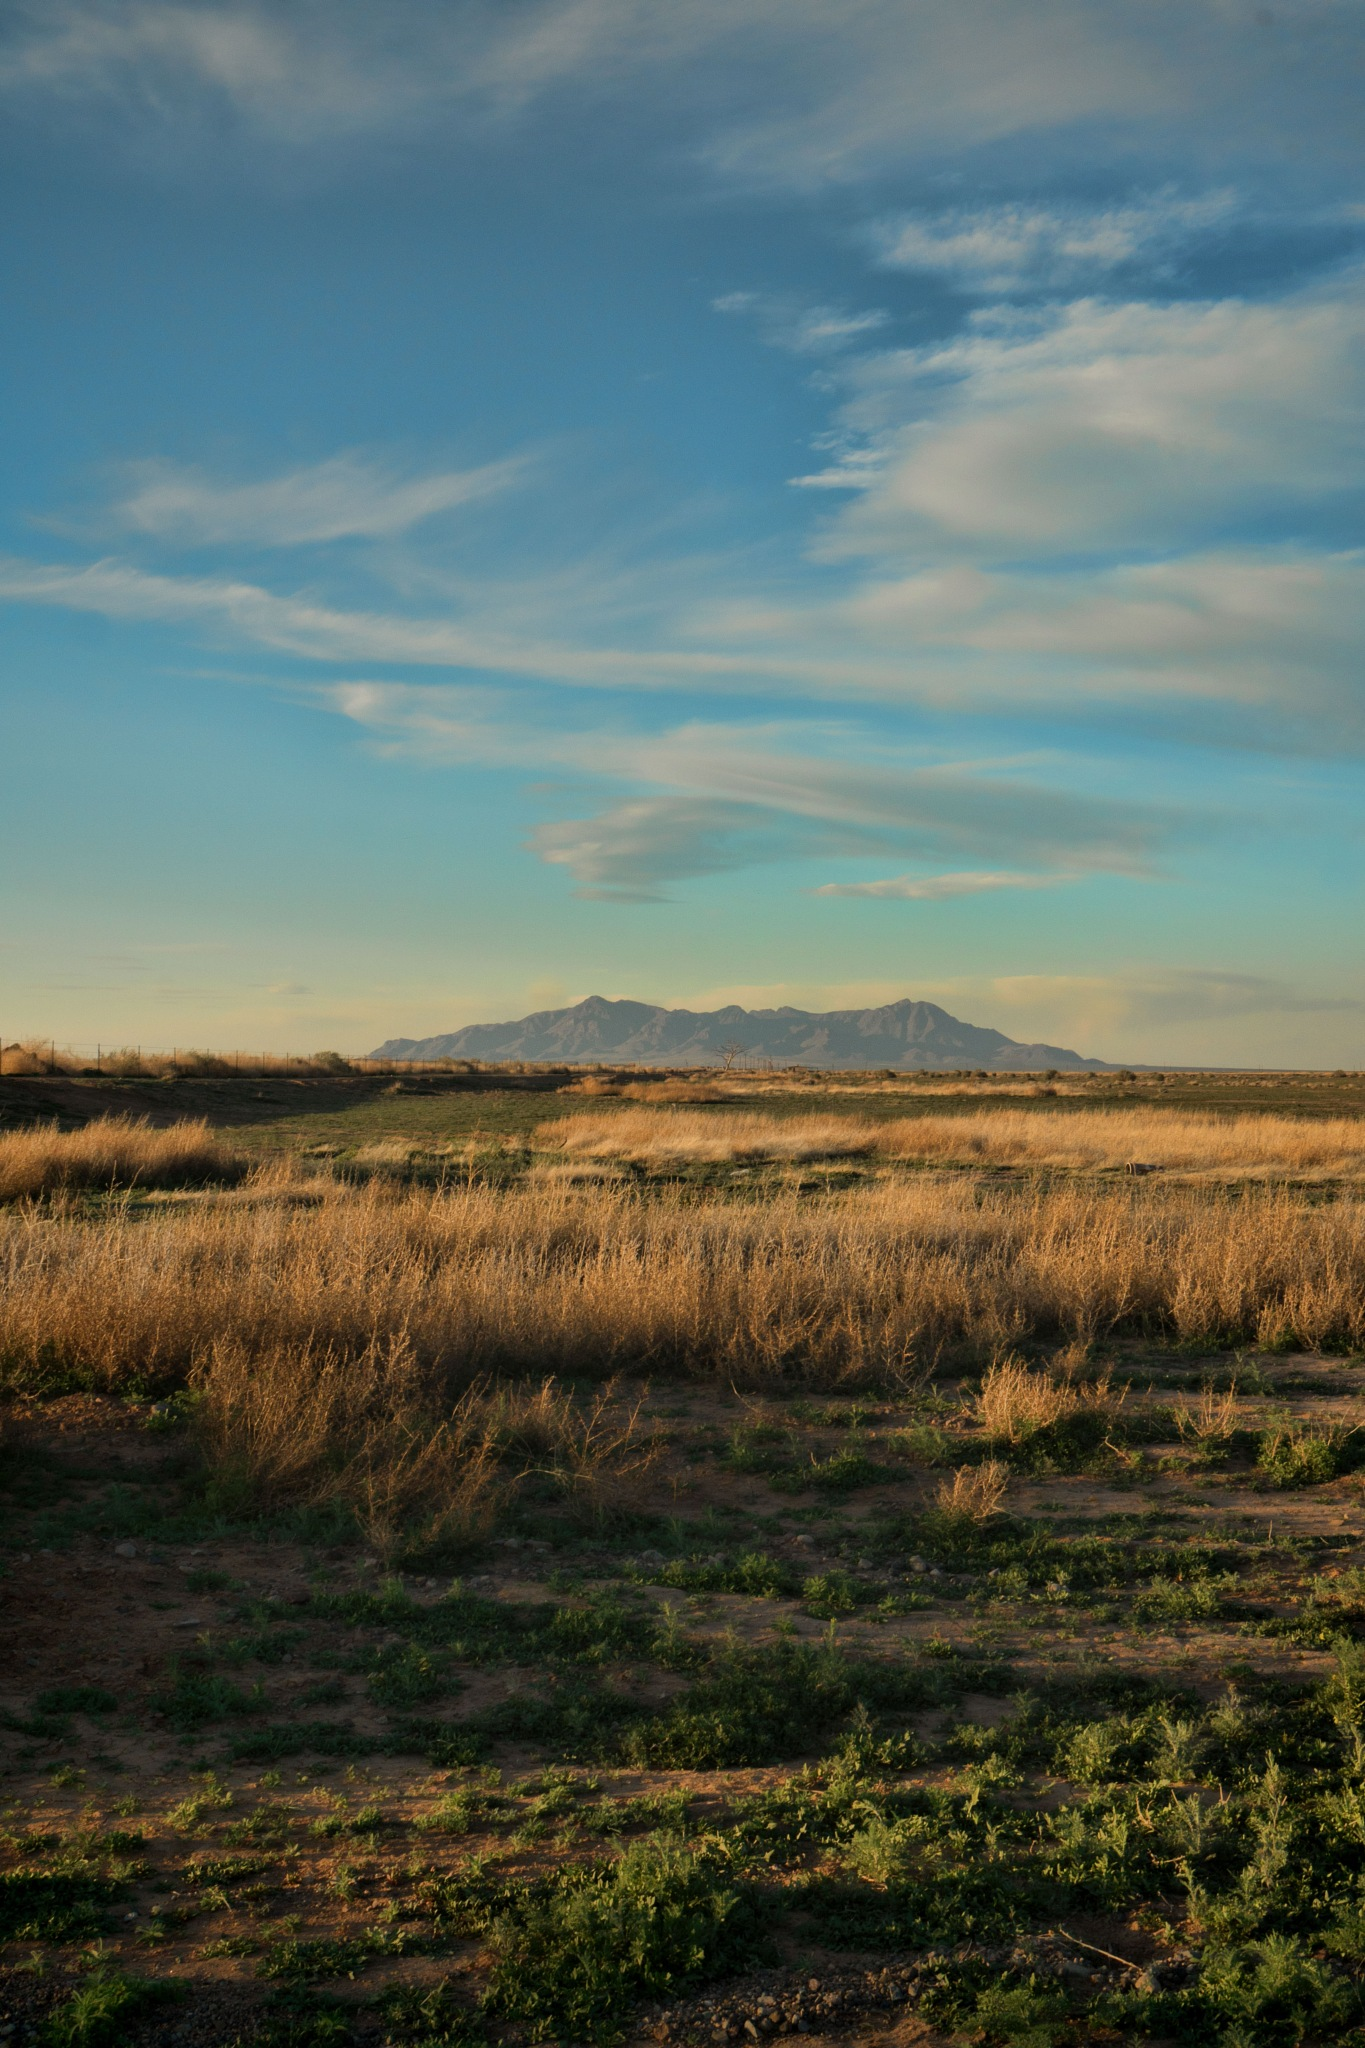 Late afternoon, Columbus, New Mexico USA by John Mark Jennings